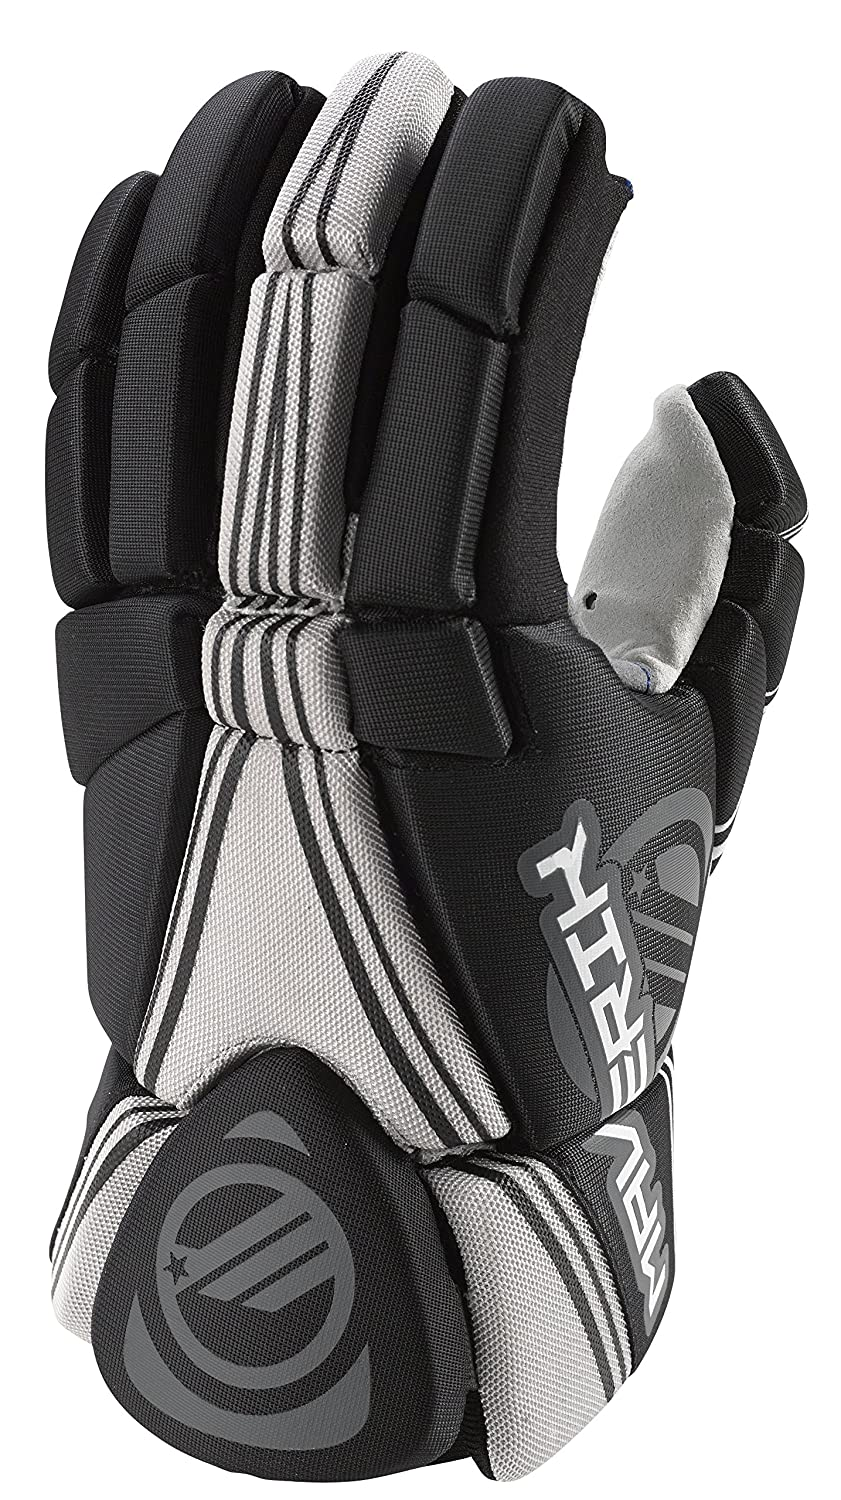 The Best Lacrosse Gloves 4